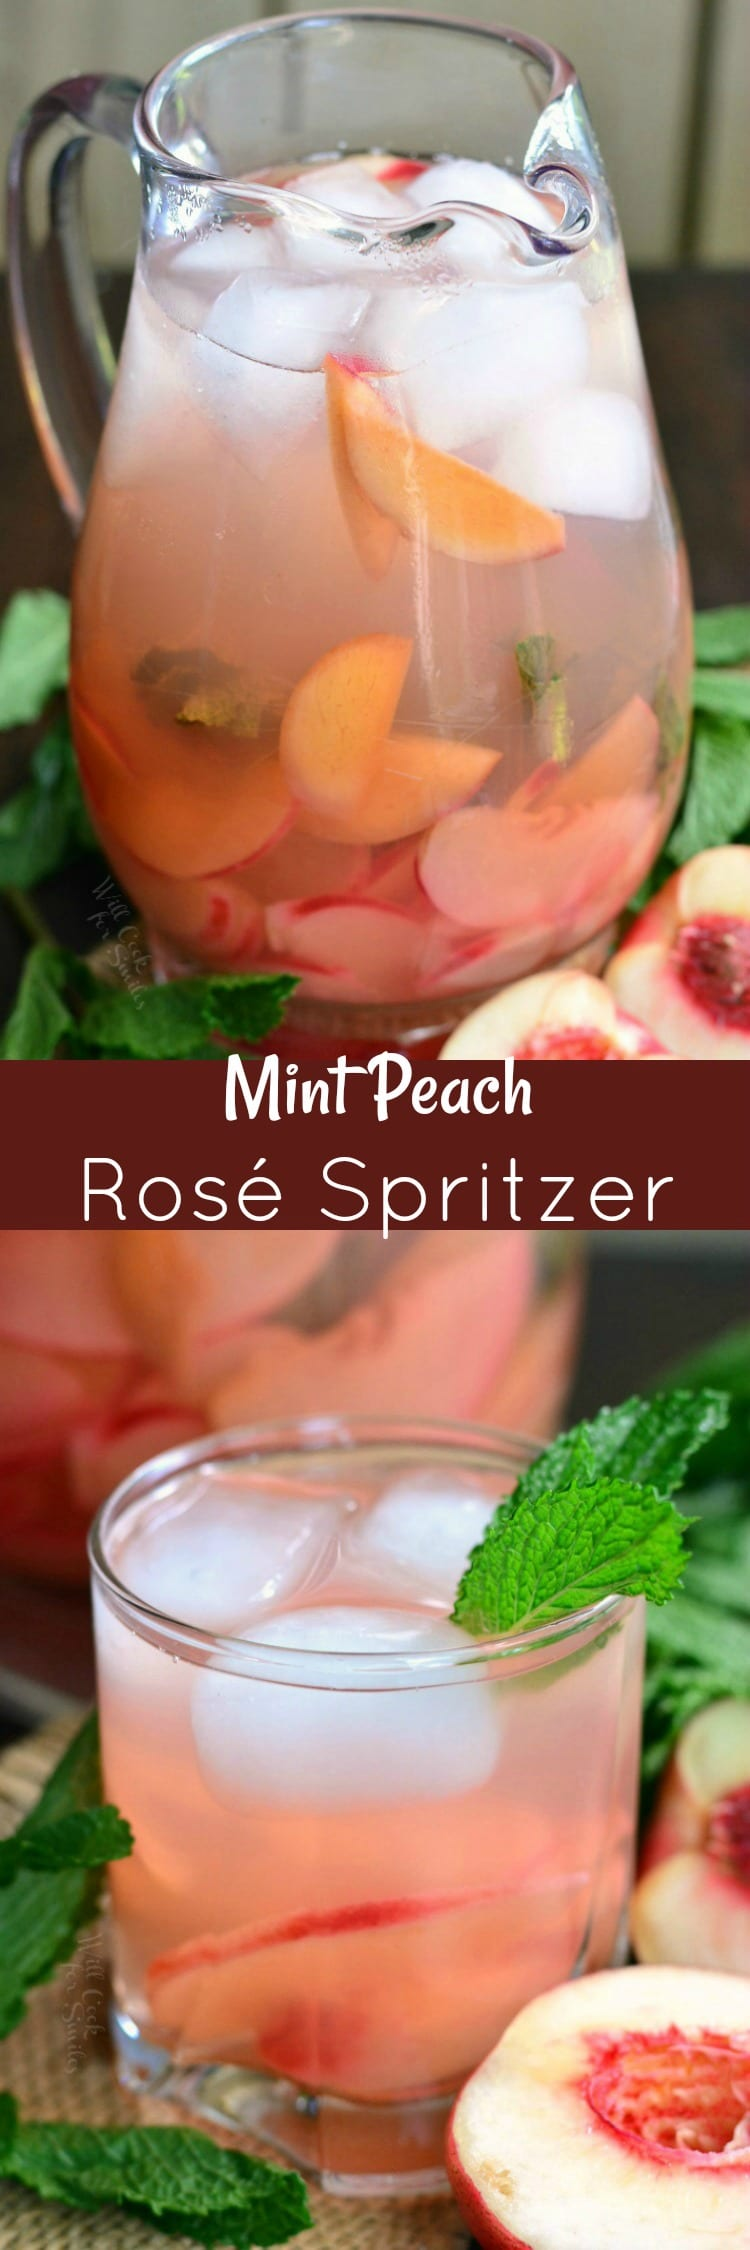 Mint Peach Rose Spritzer. This beautiful Rose Spritzer is infused with fresh peaches and mint and made with rosé wine and champagne.